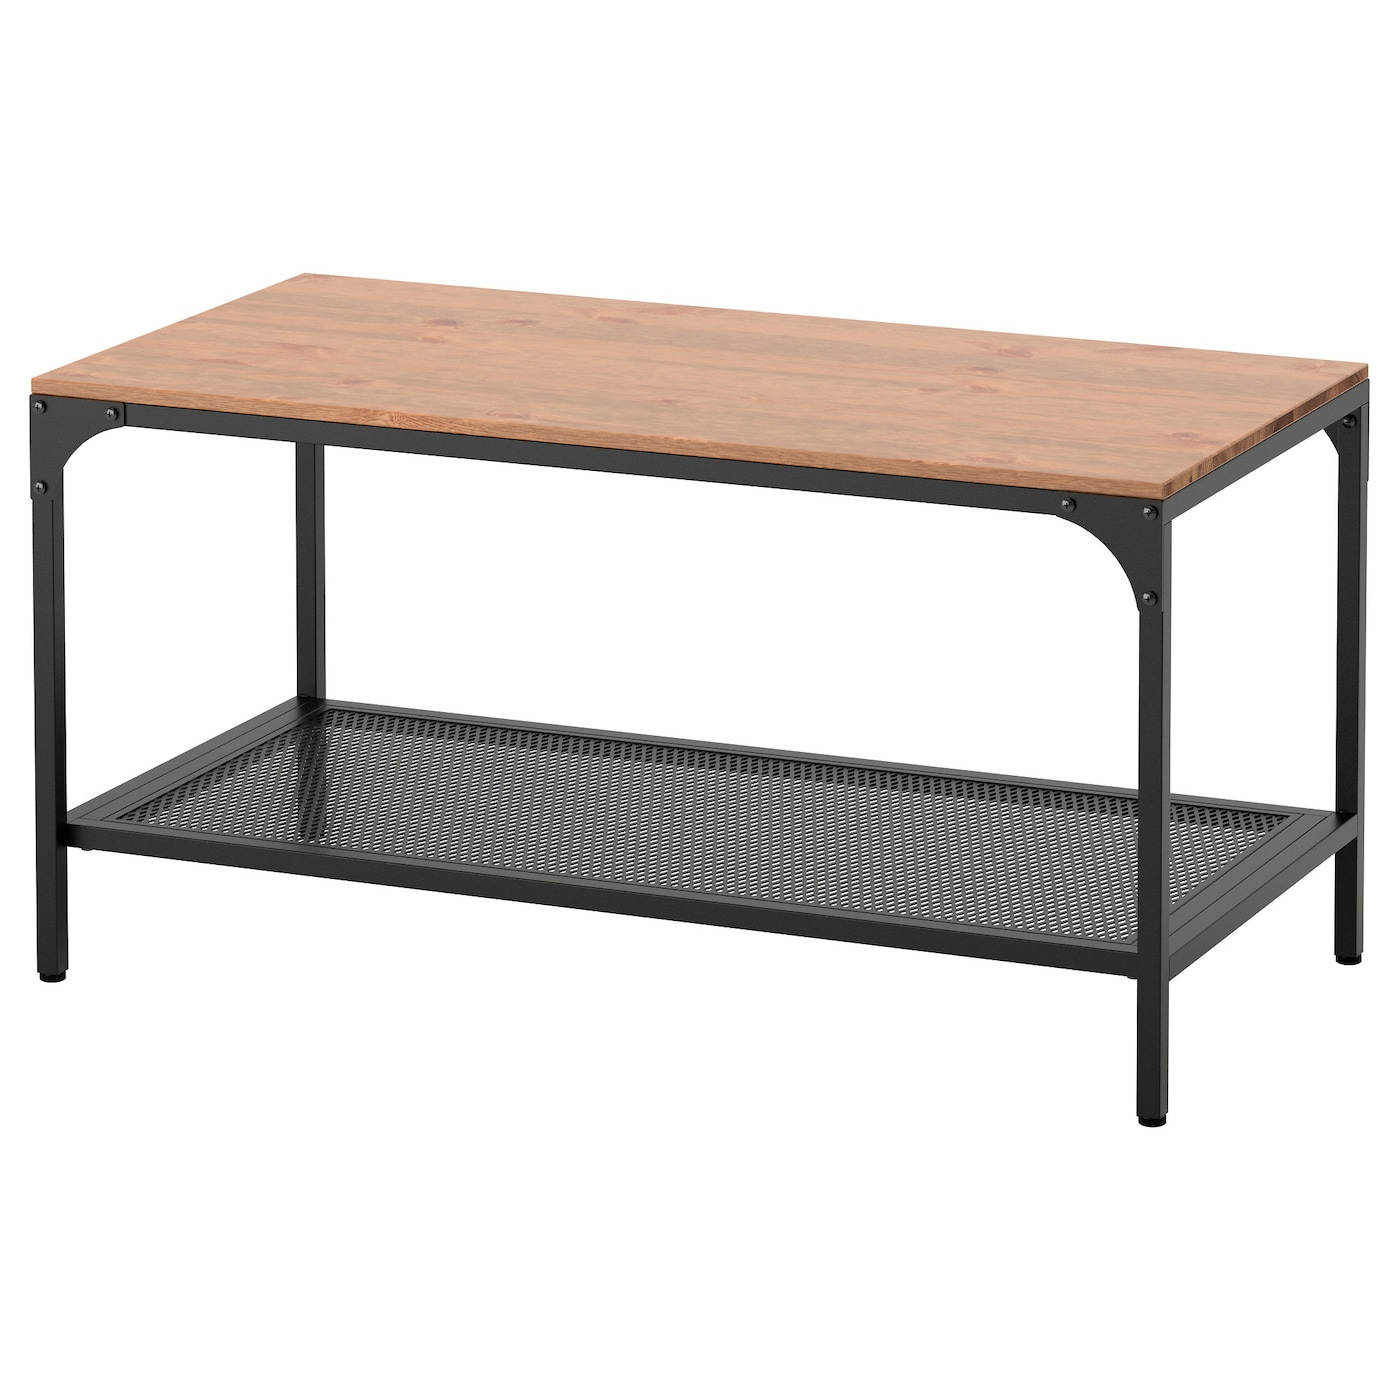 Ikea FjÄllbo Coffee Table